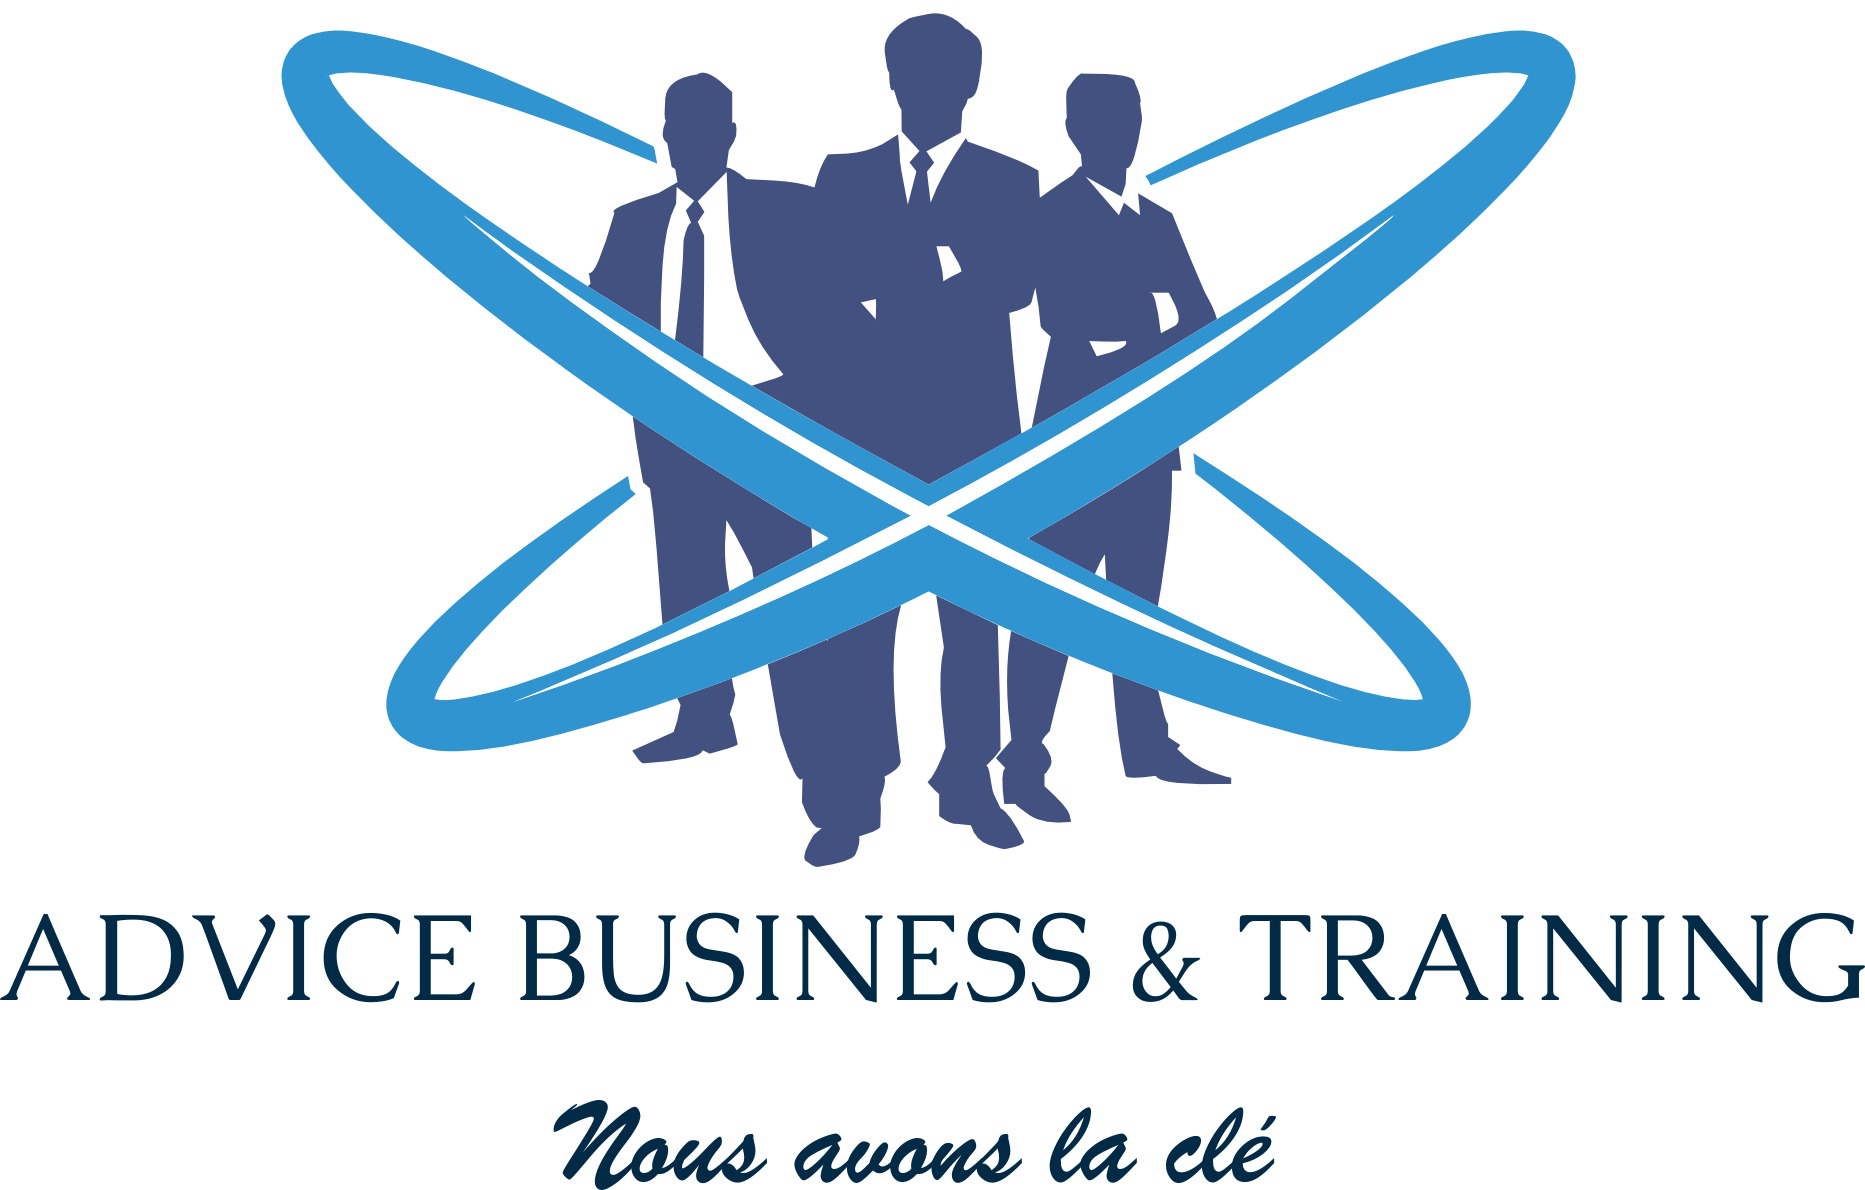 ADVICE BUSINESS & TRAINING